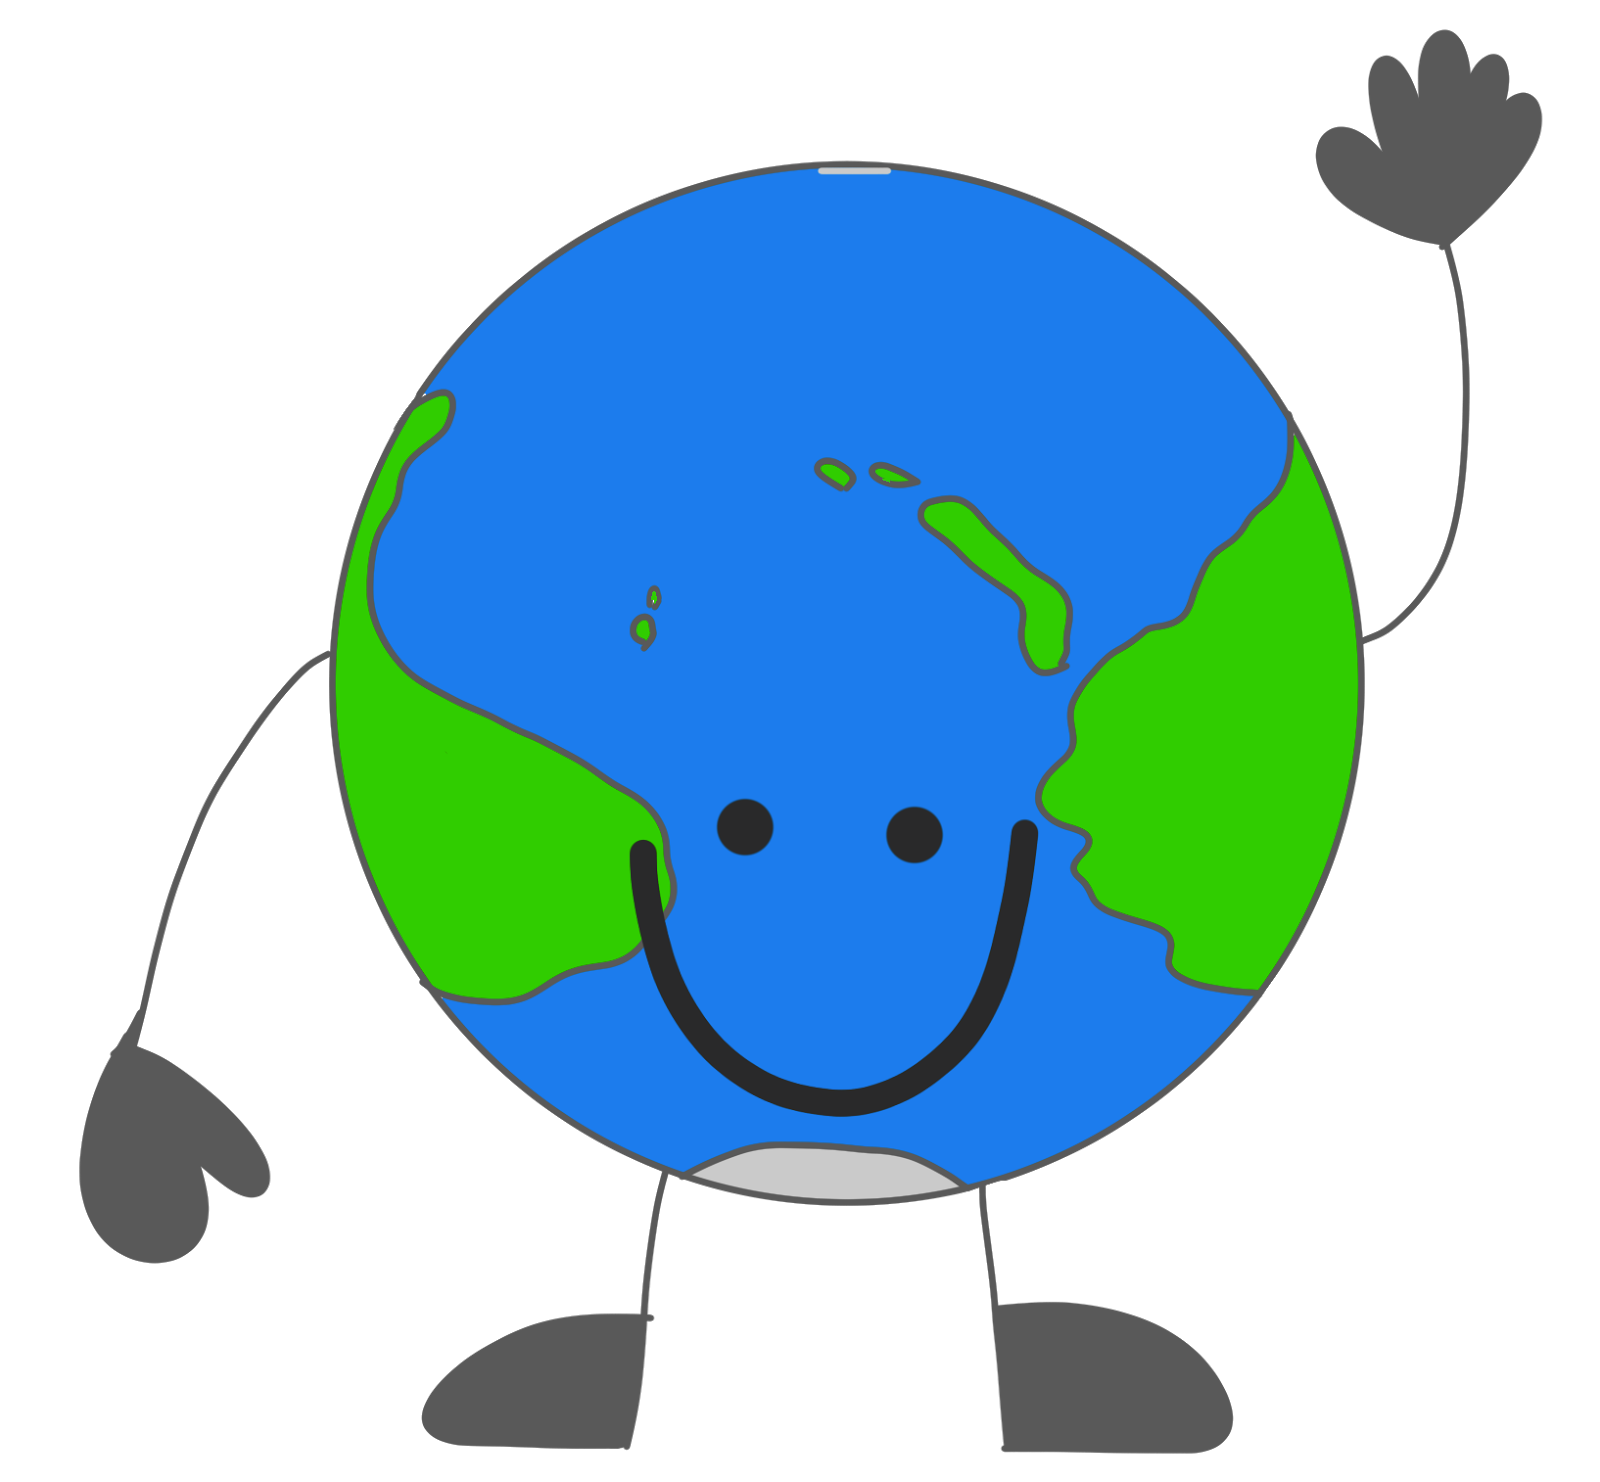 world clipart-world clipart-16